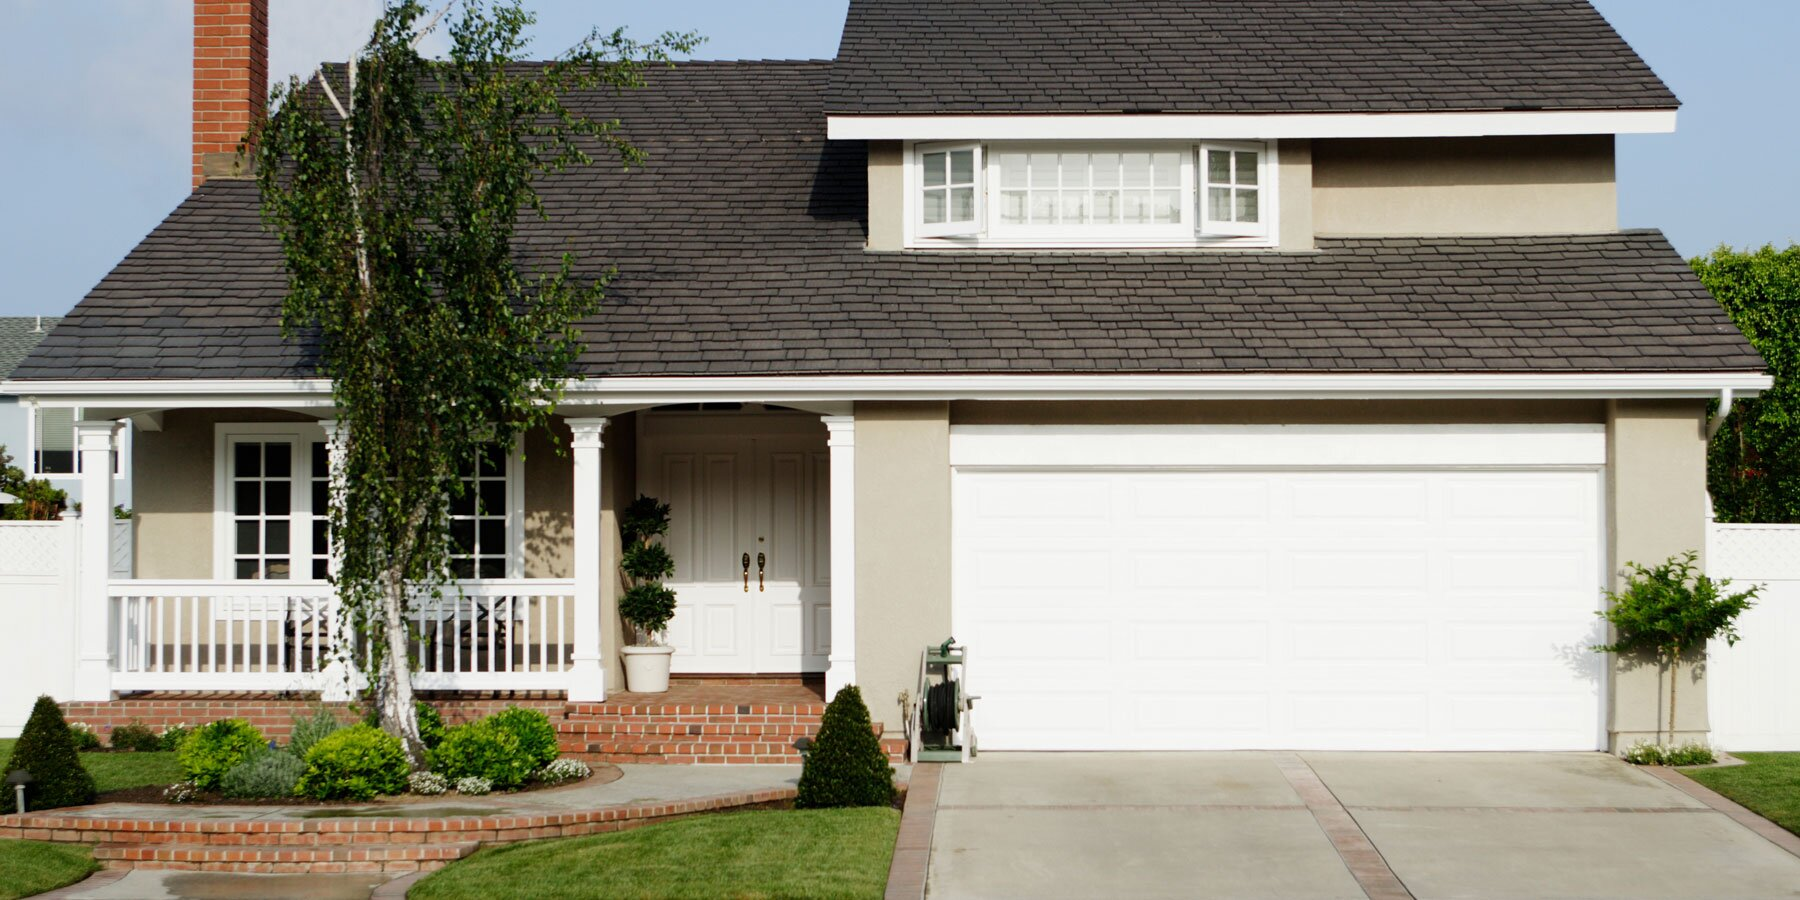 Why How To Improve Curb Appeal Is So Important